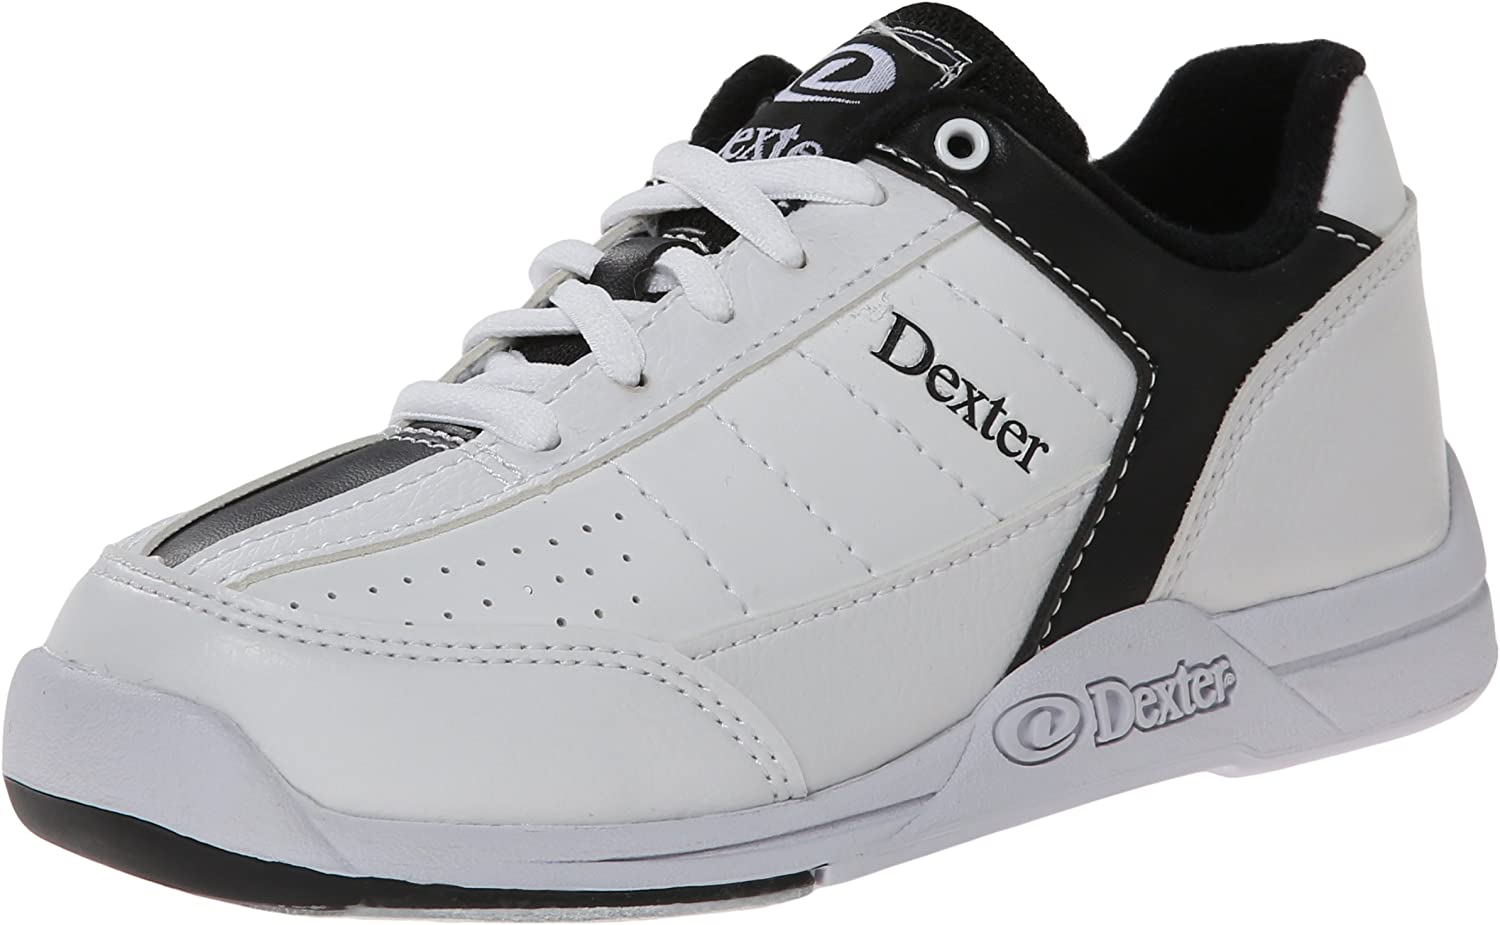 Dexter Kid's Ricky III Bowling shoes, White Black